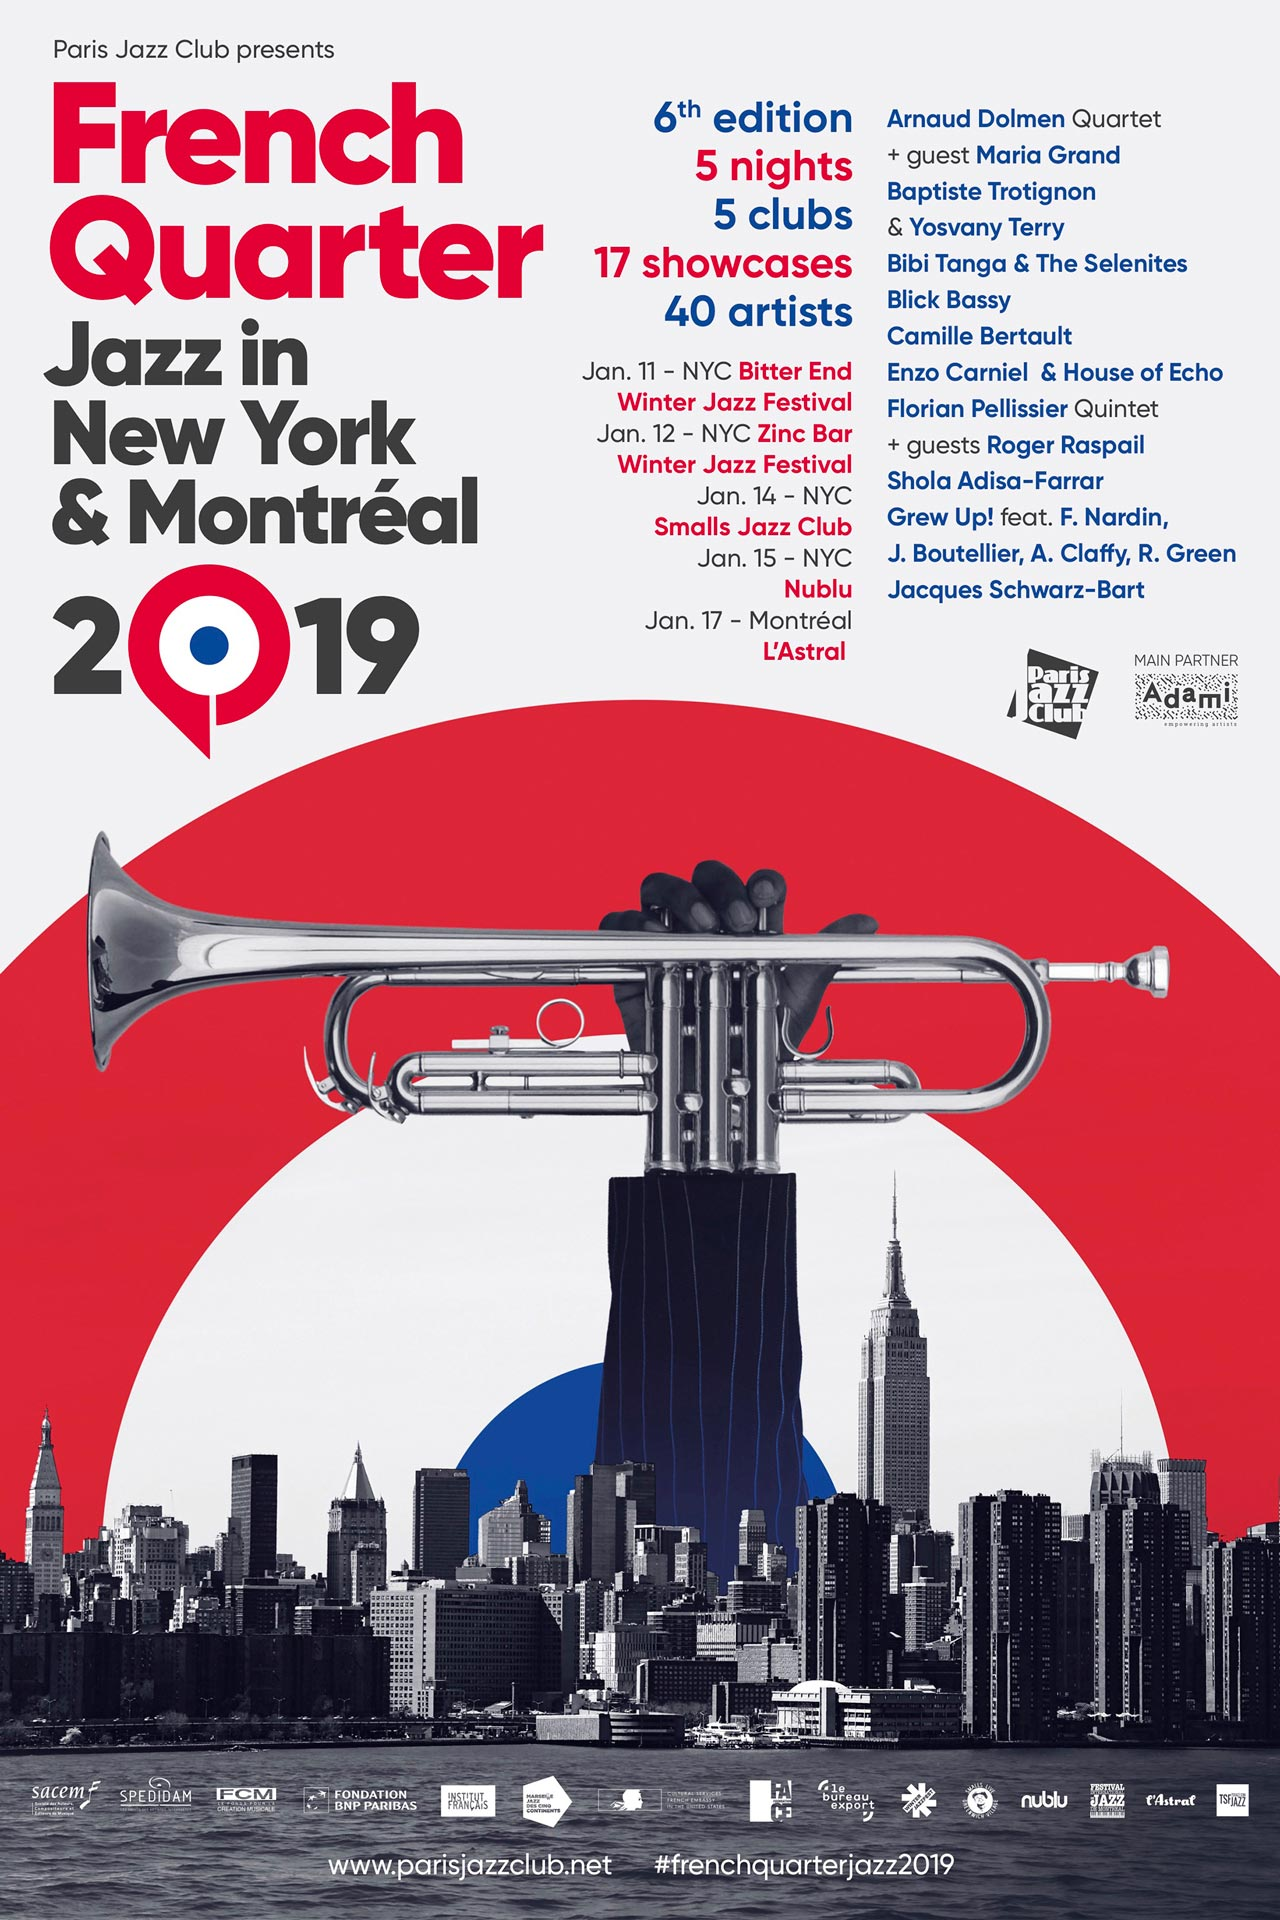 Bureau De Change Paris Montparnasse French Quarter Jazz In Nyc Montréal 2019 Paris Jazz Club